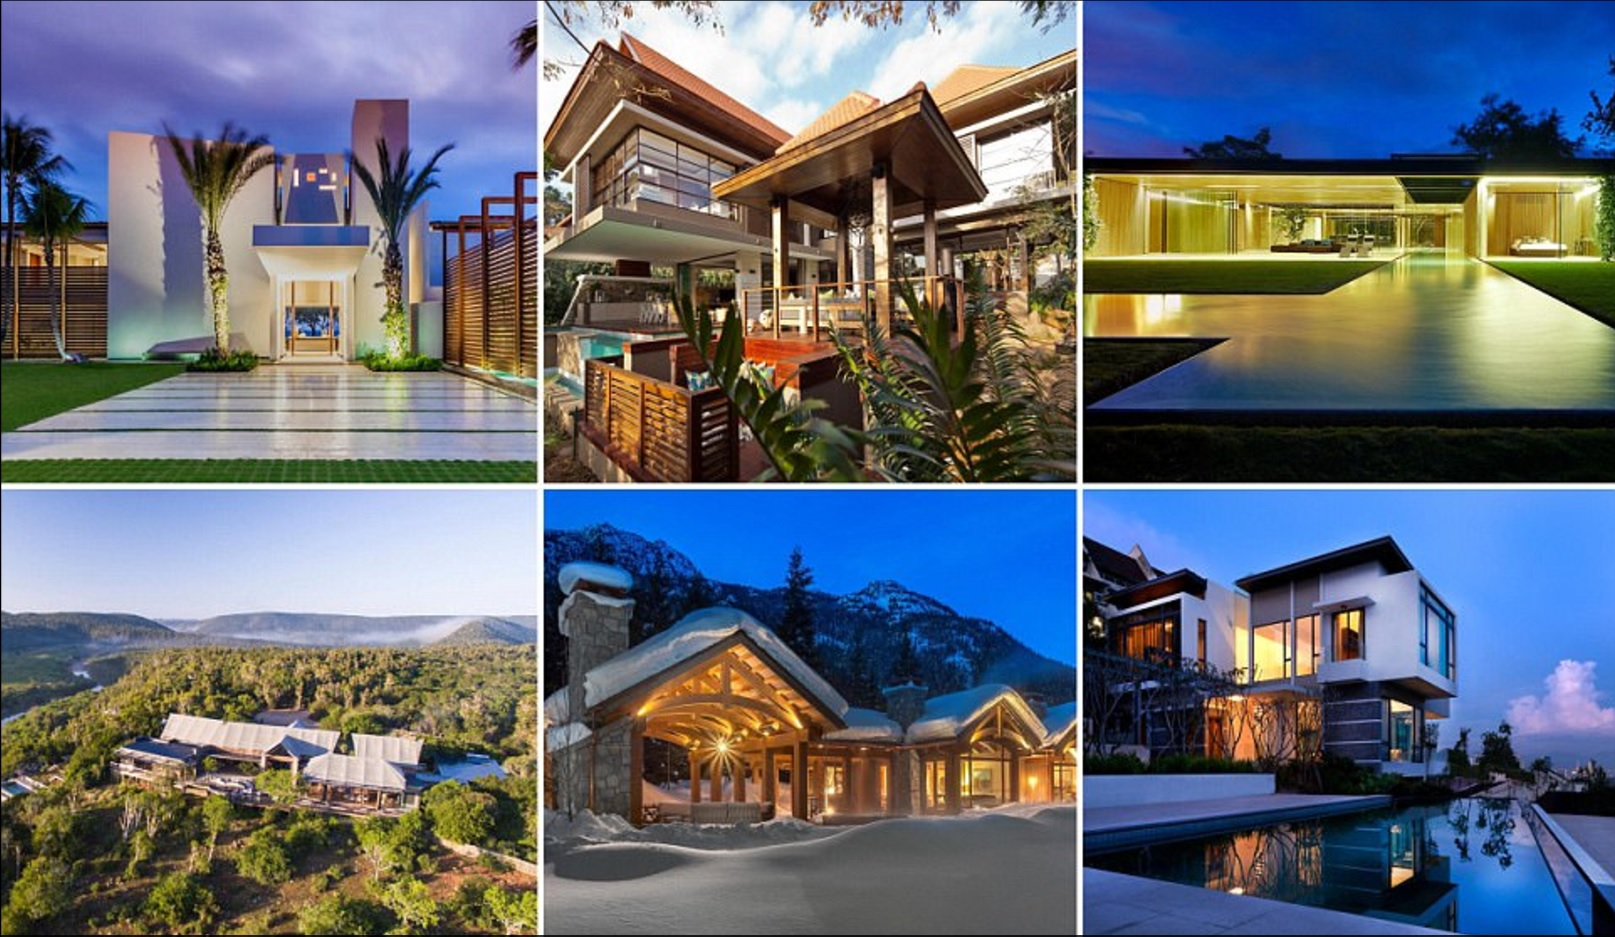 Zimbali home listed among best in the world  North Coast Courier